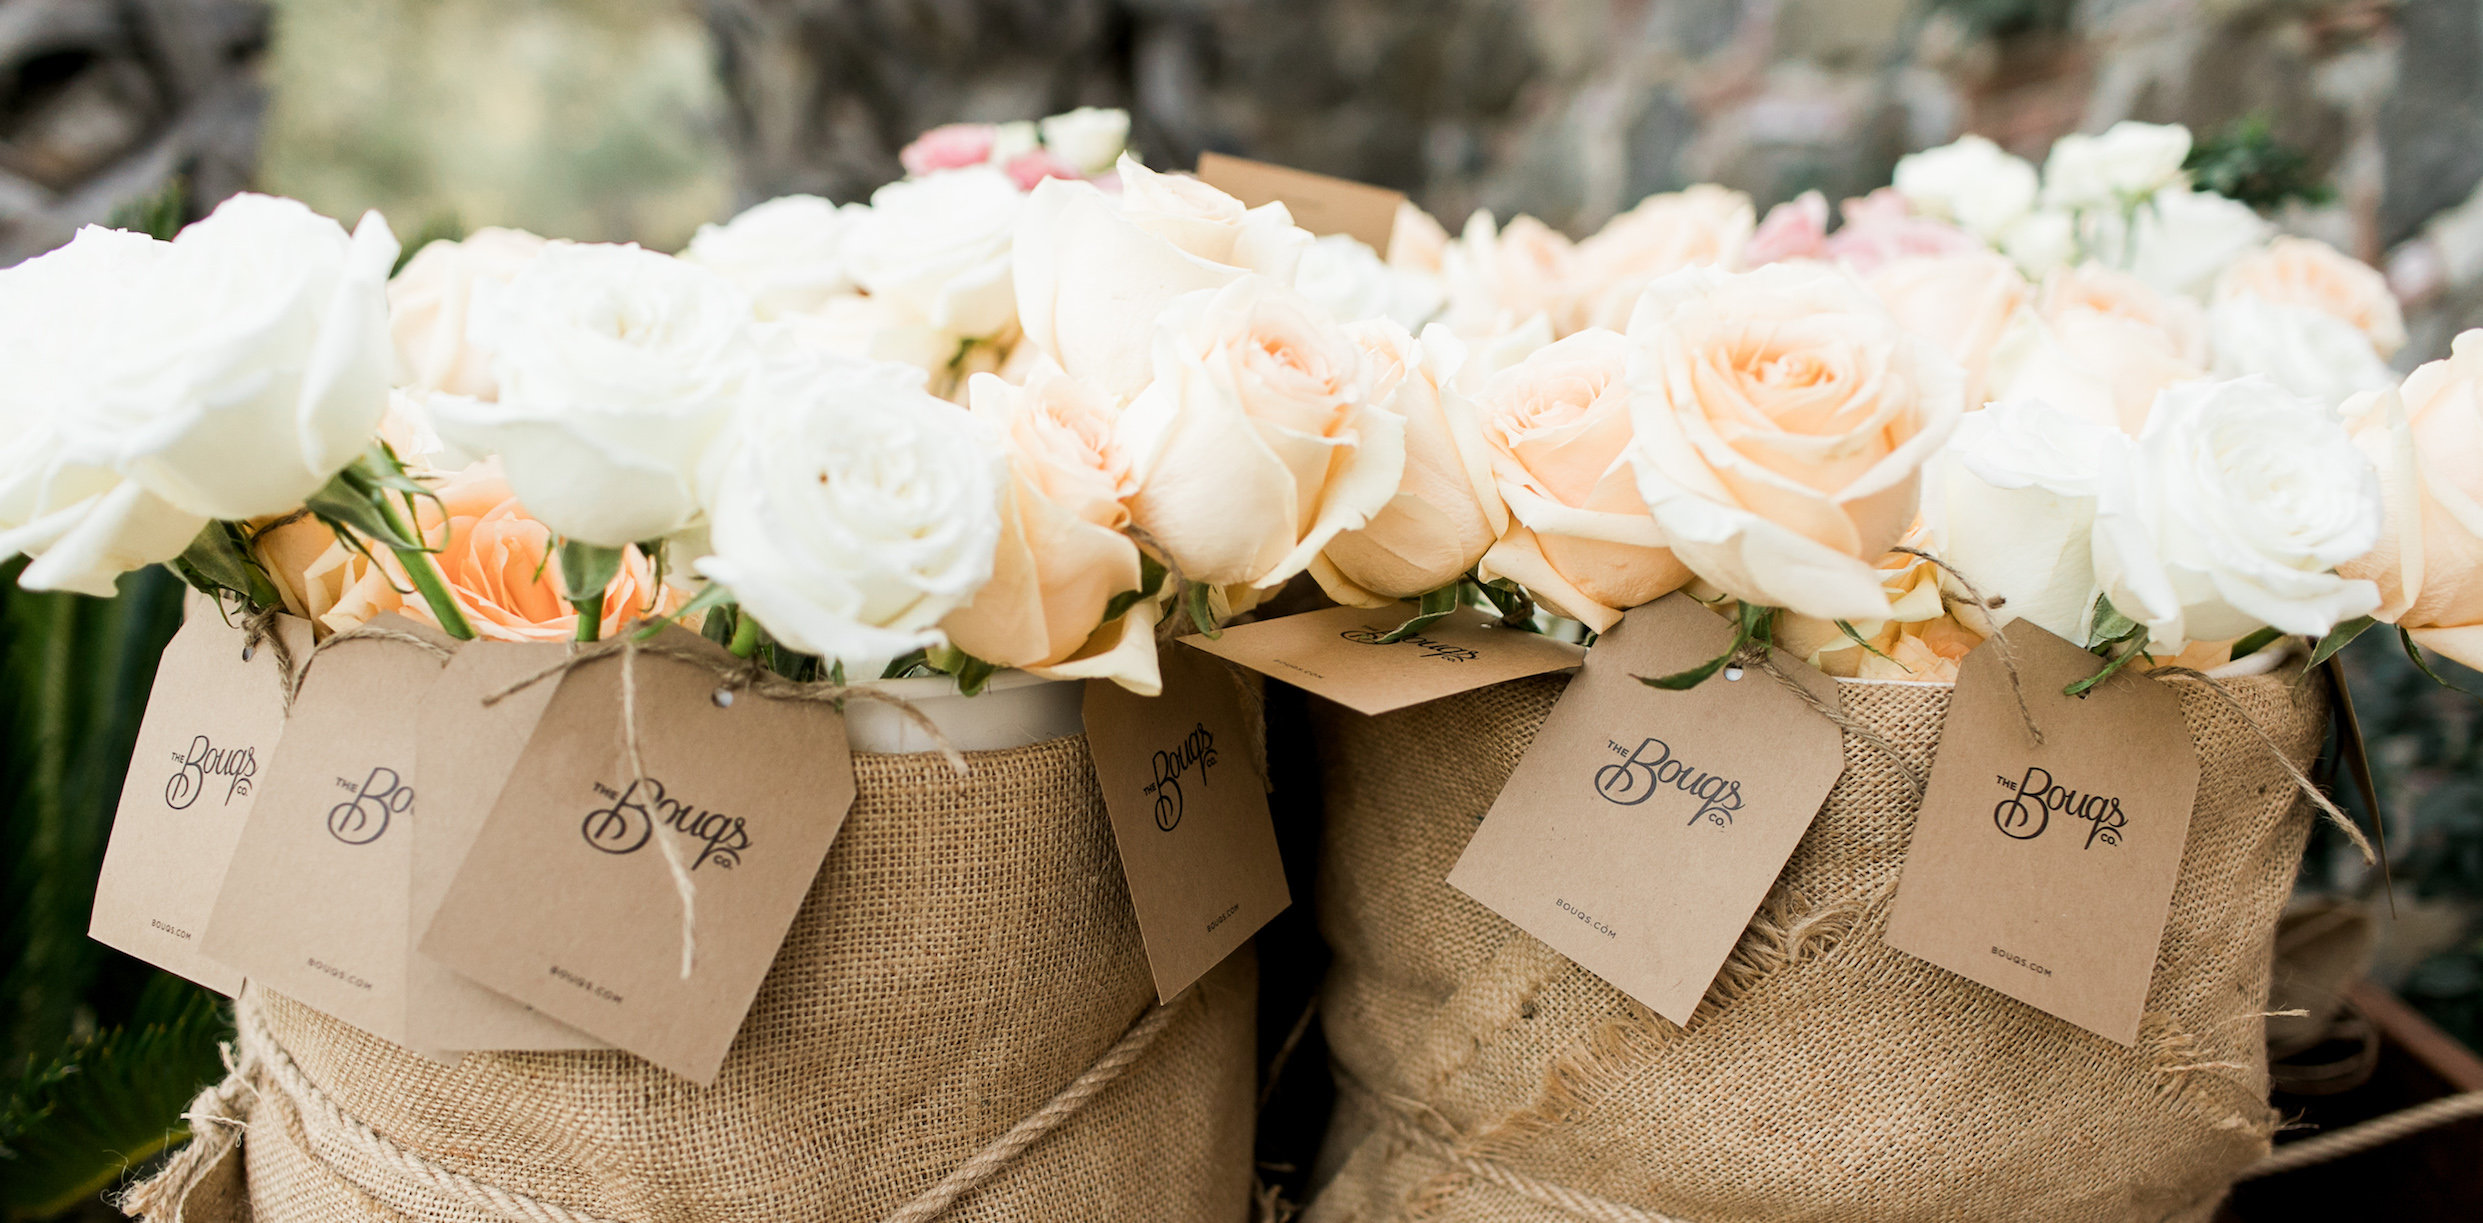 Home bulk roses peach roses - Benefits Of Working With The Bouqs Company Our Cut To Order Flowers